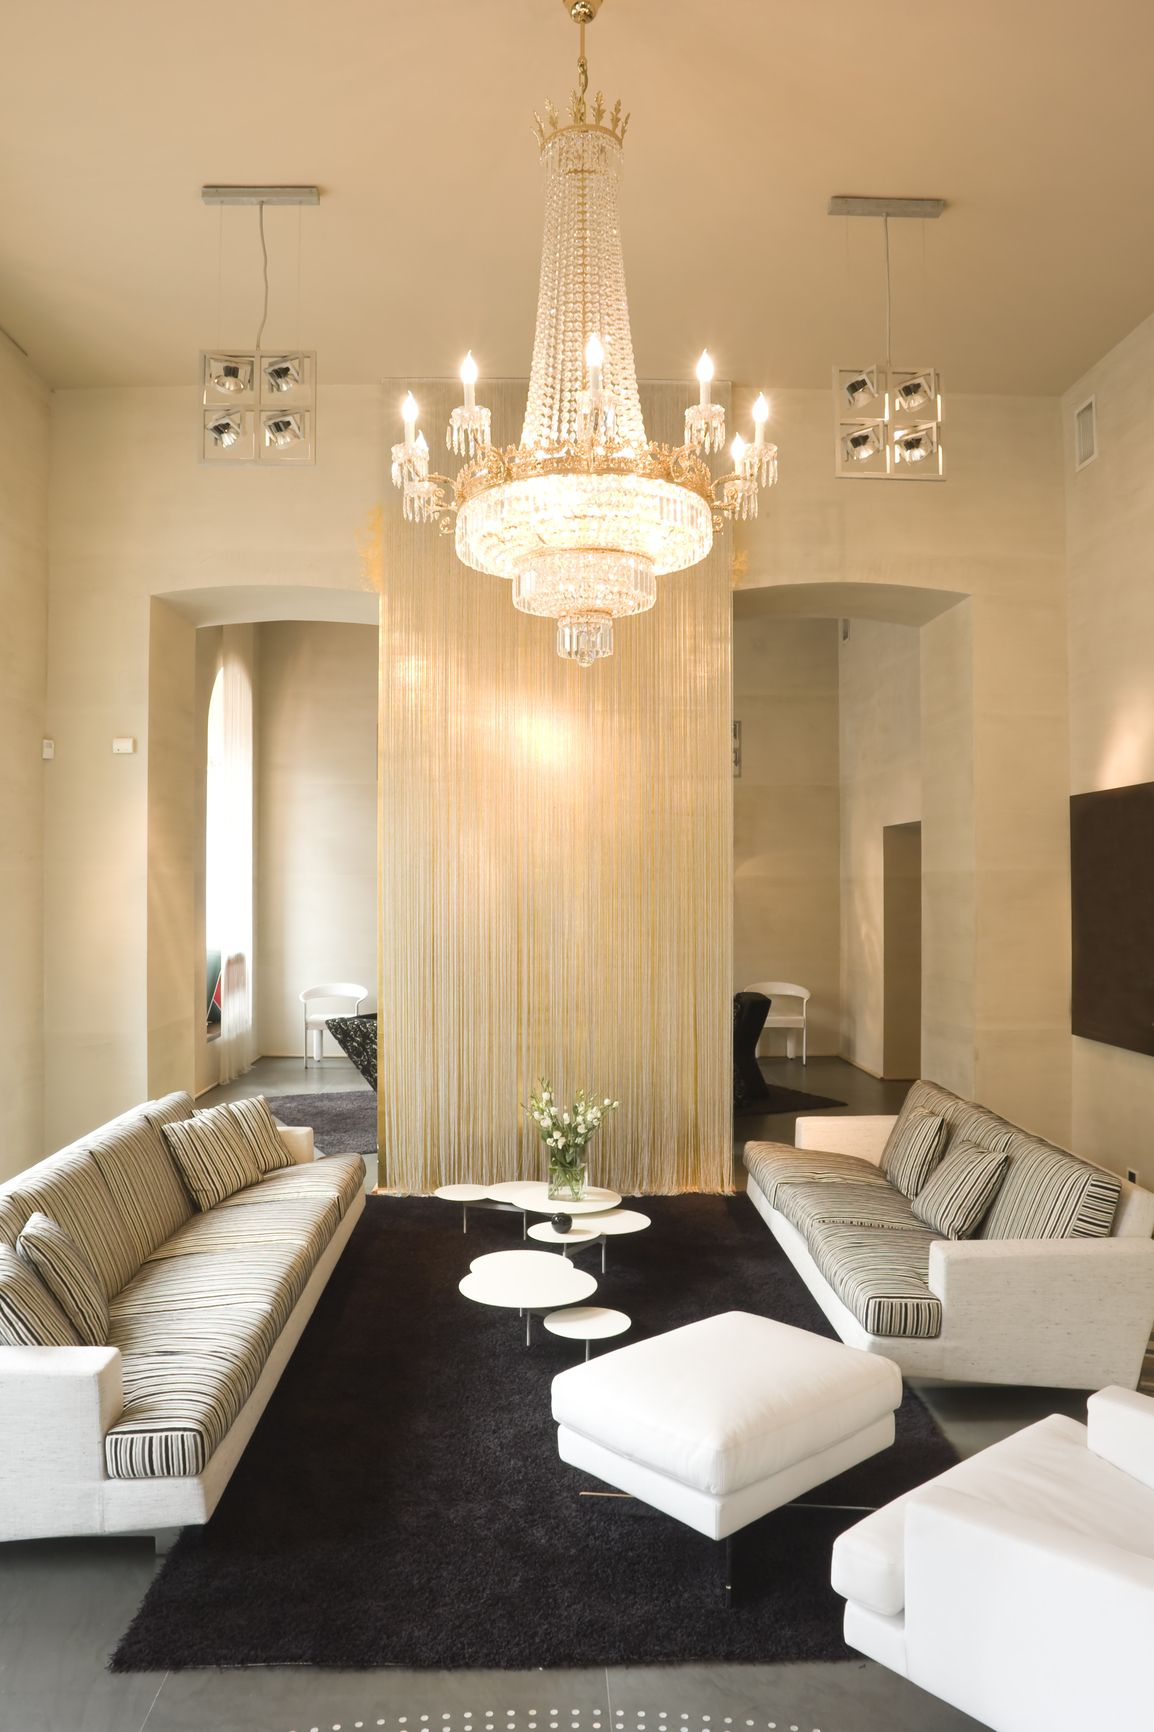 1,000\'s of Formal Living Room Ideas | Small spaces, Ceilings and ...